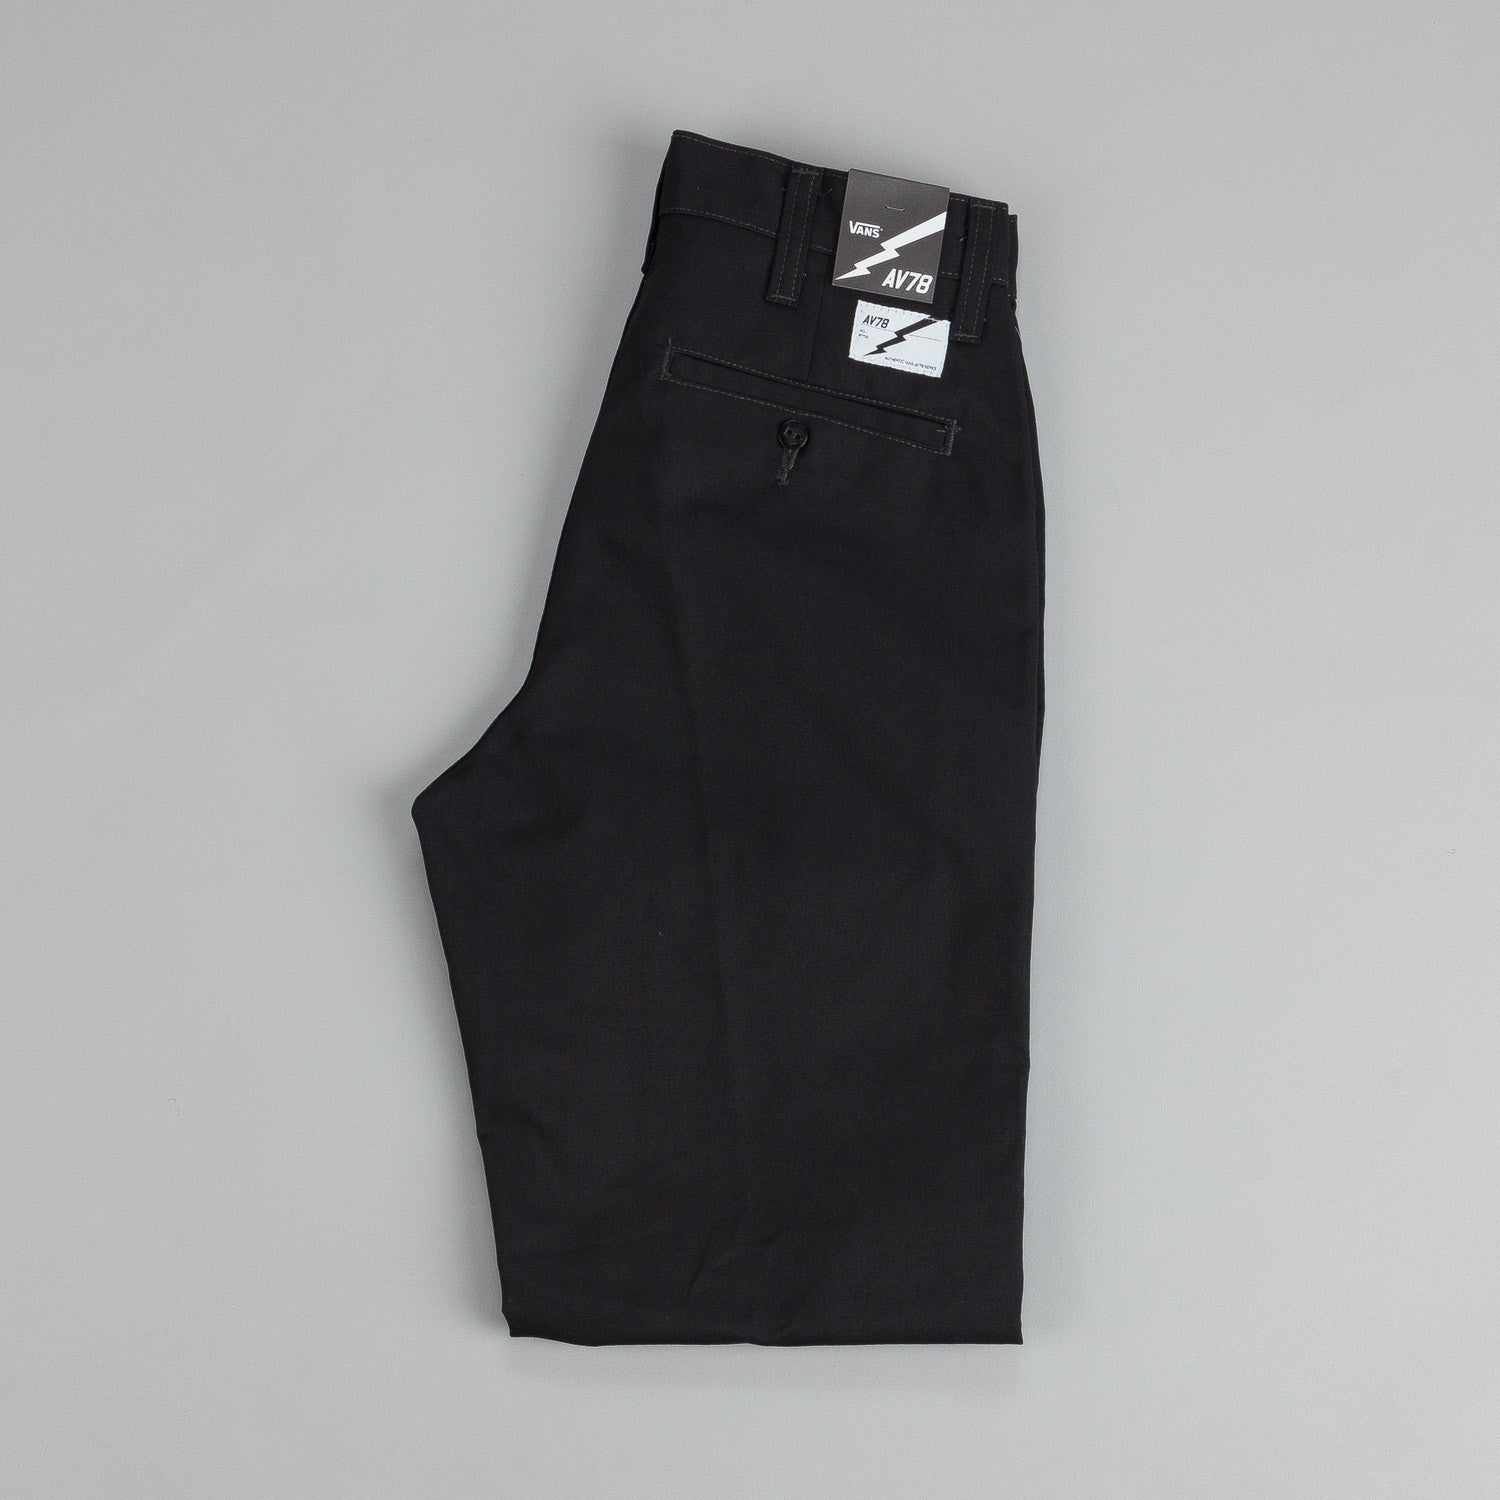 Vans AV78 Work Pant II Black